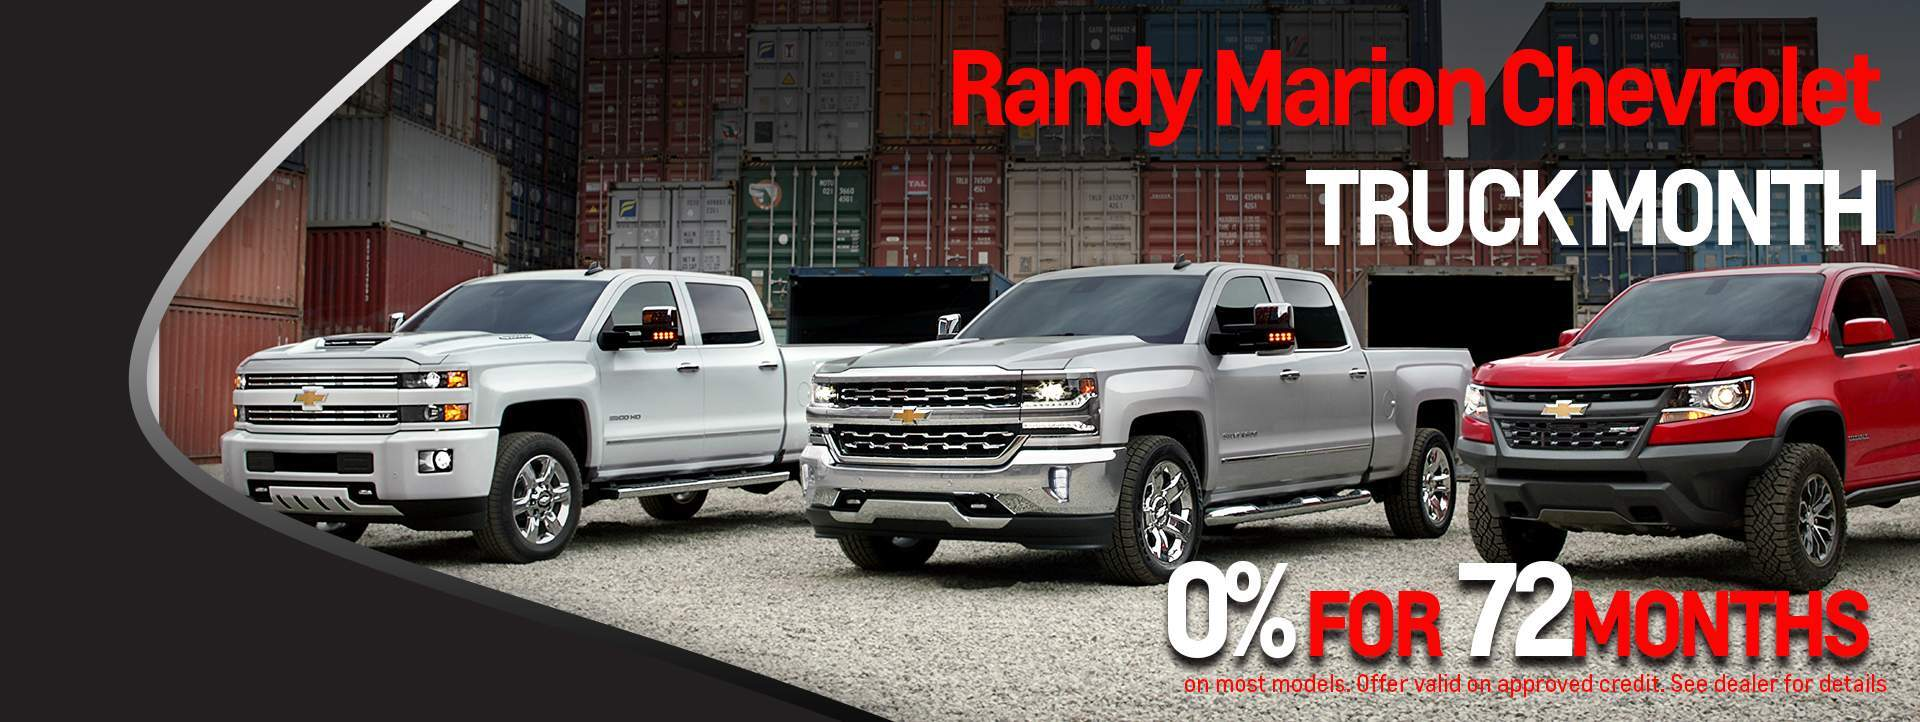 Chevrolet Truck Month - View Our Silverado Inventory